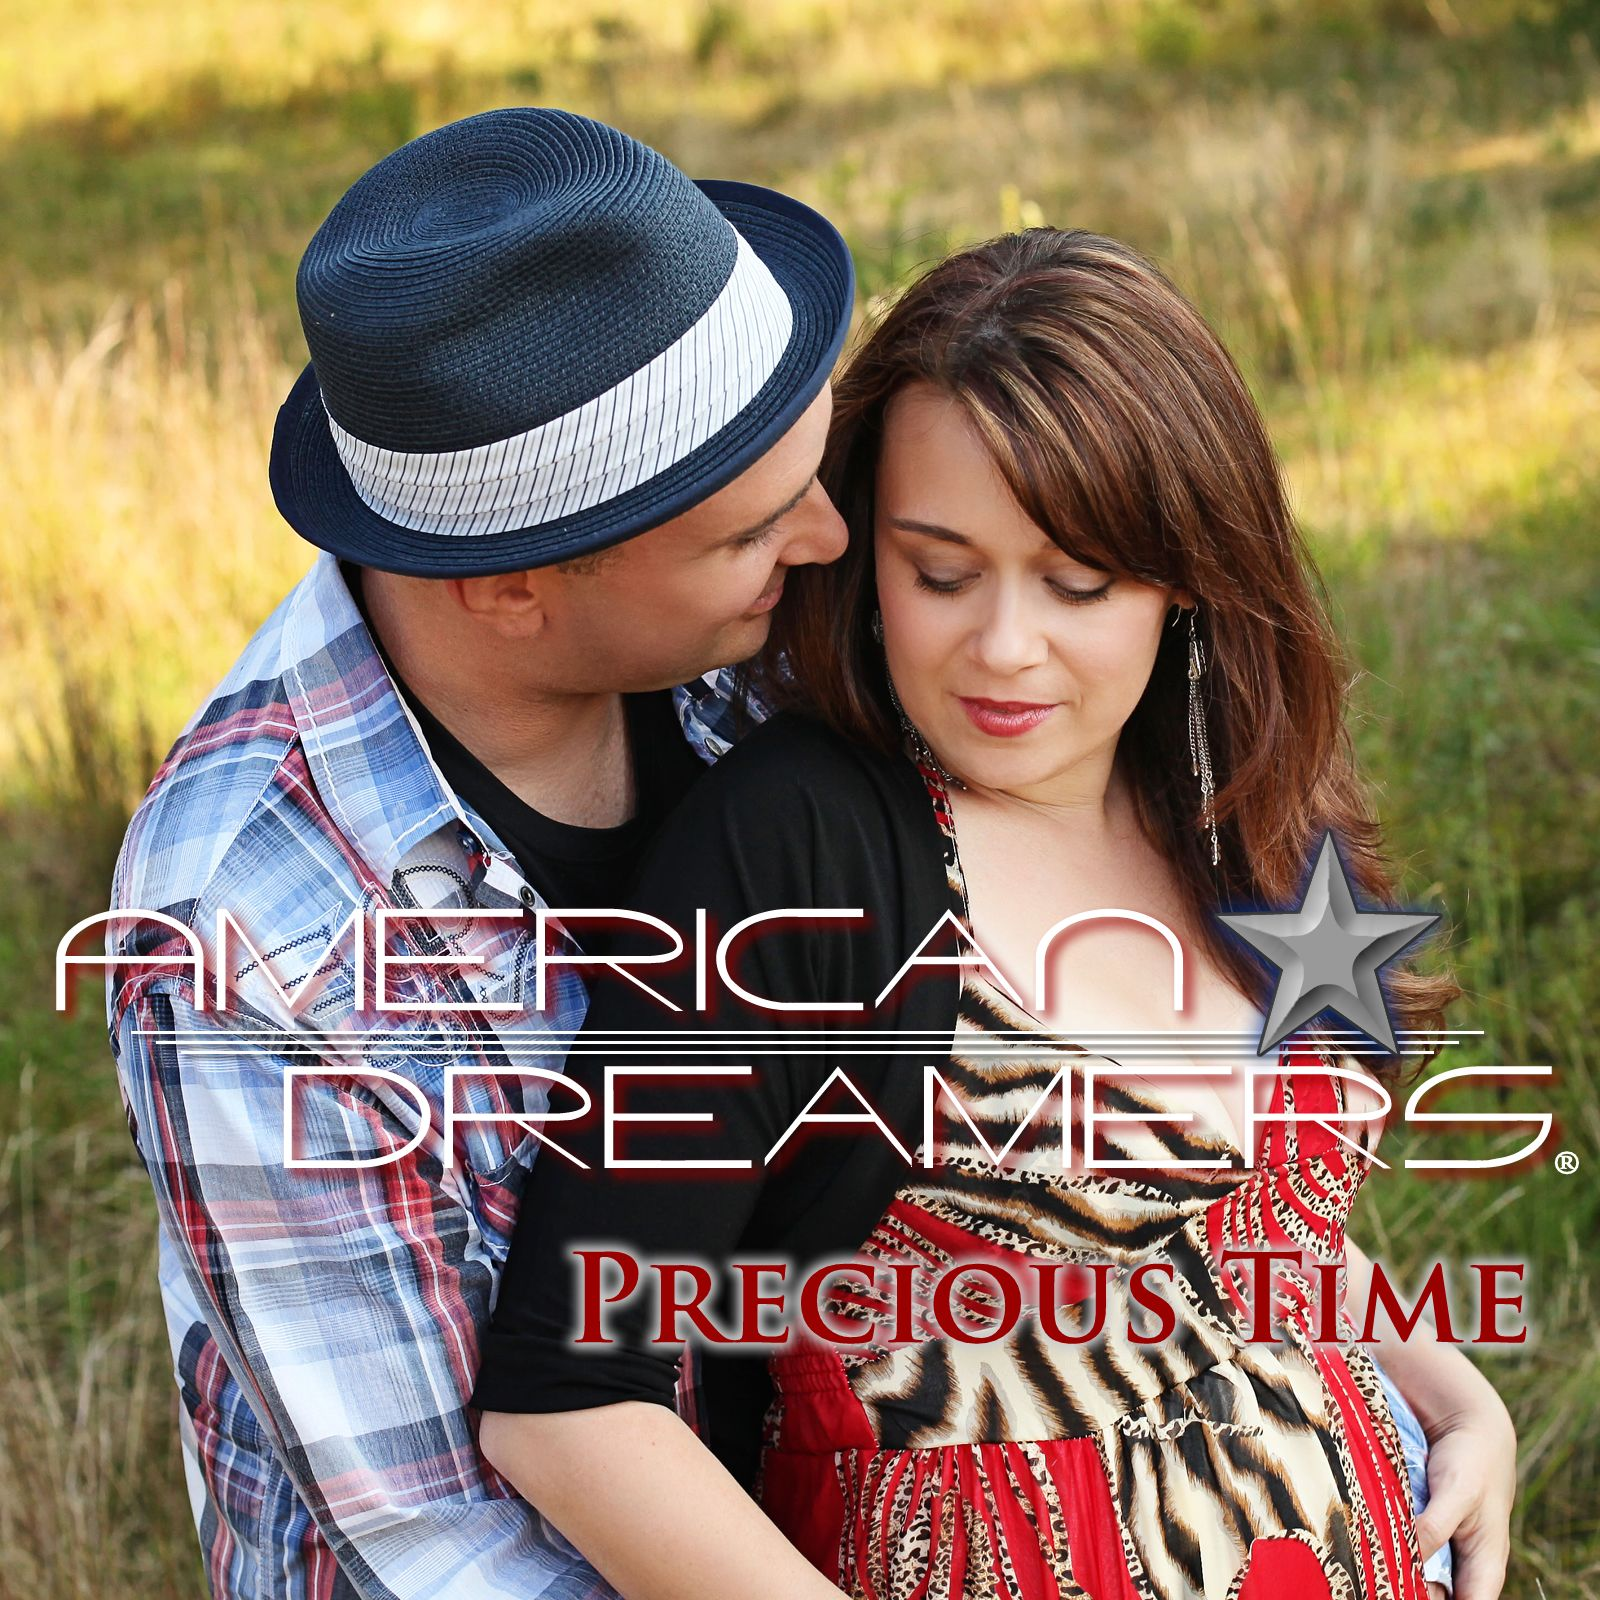 Precious timeu by american dreamers mother son dance options